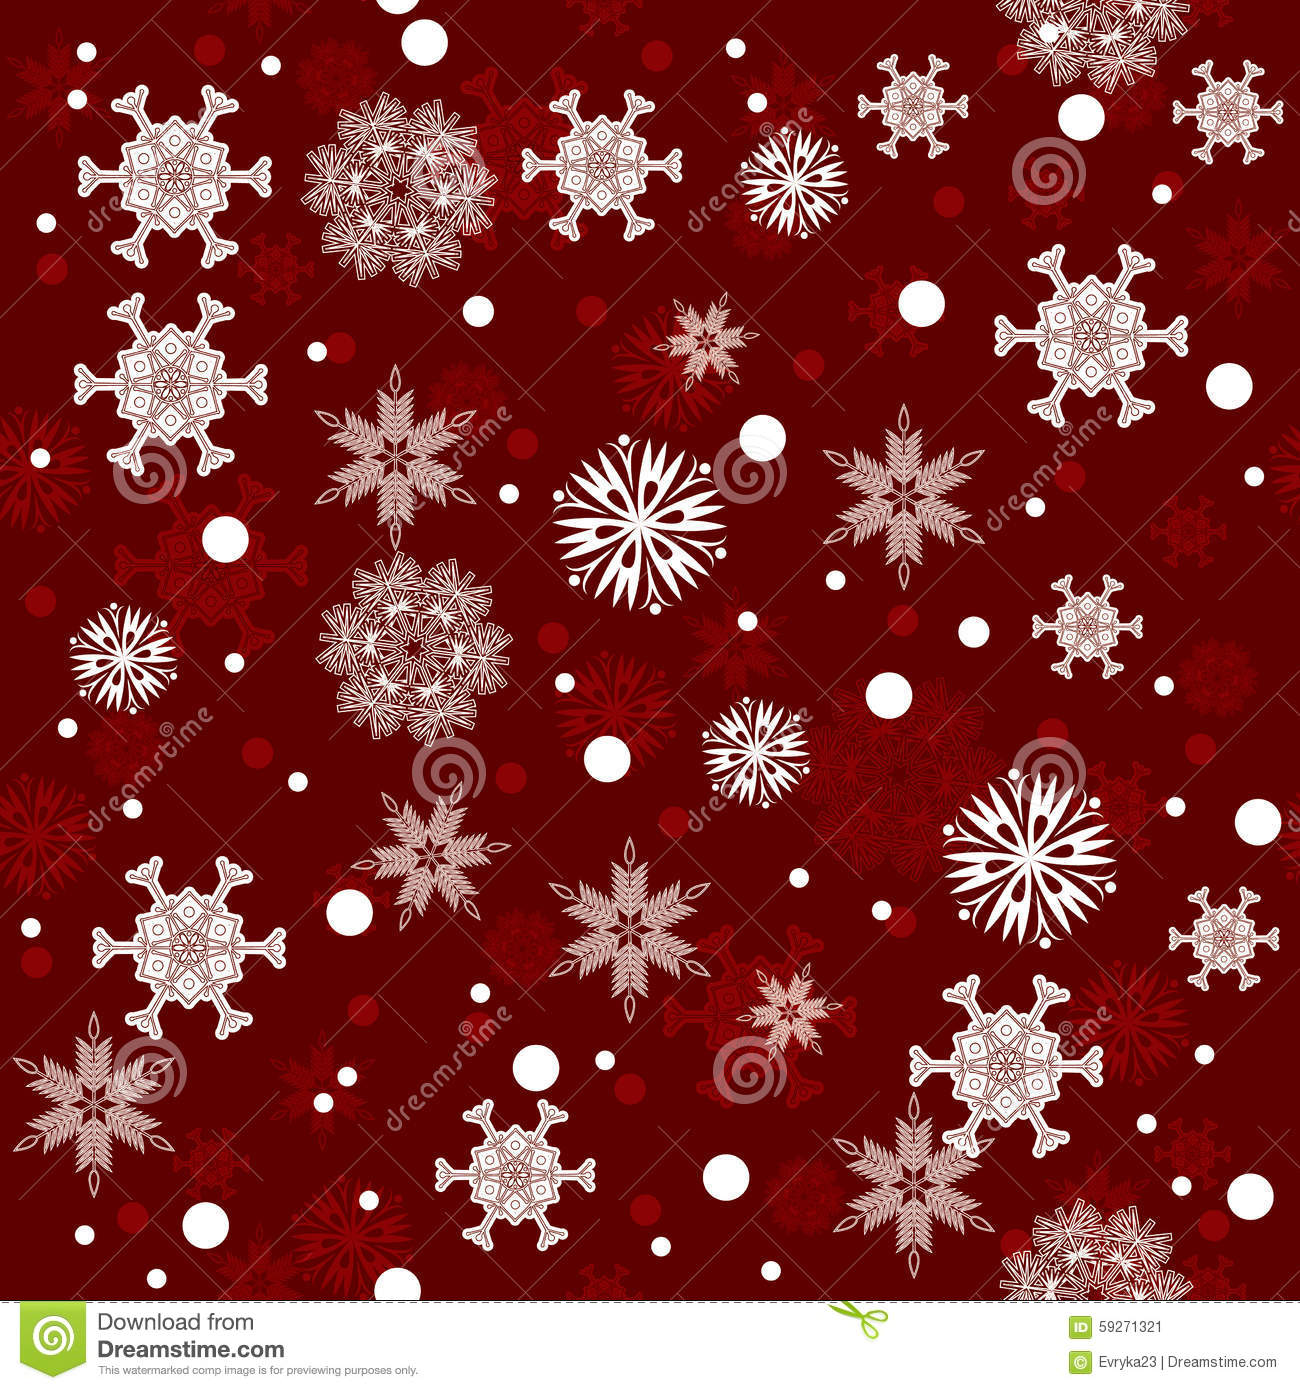 seamless red winter snowflakes pattern background stock vector